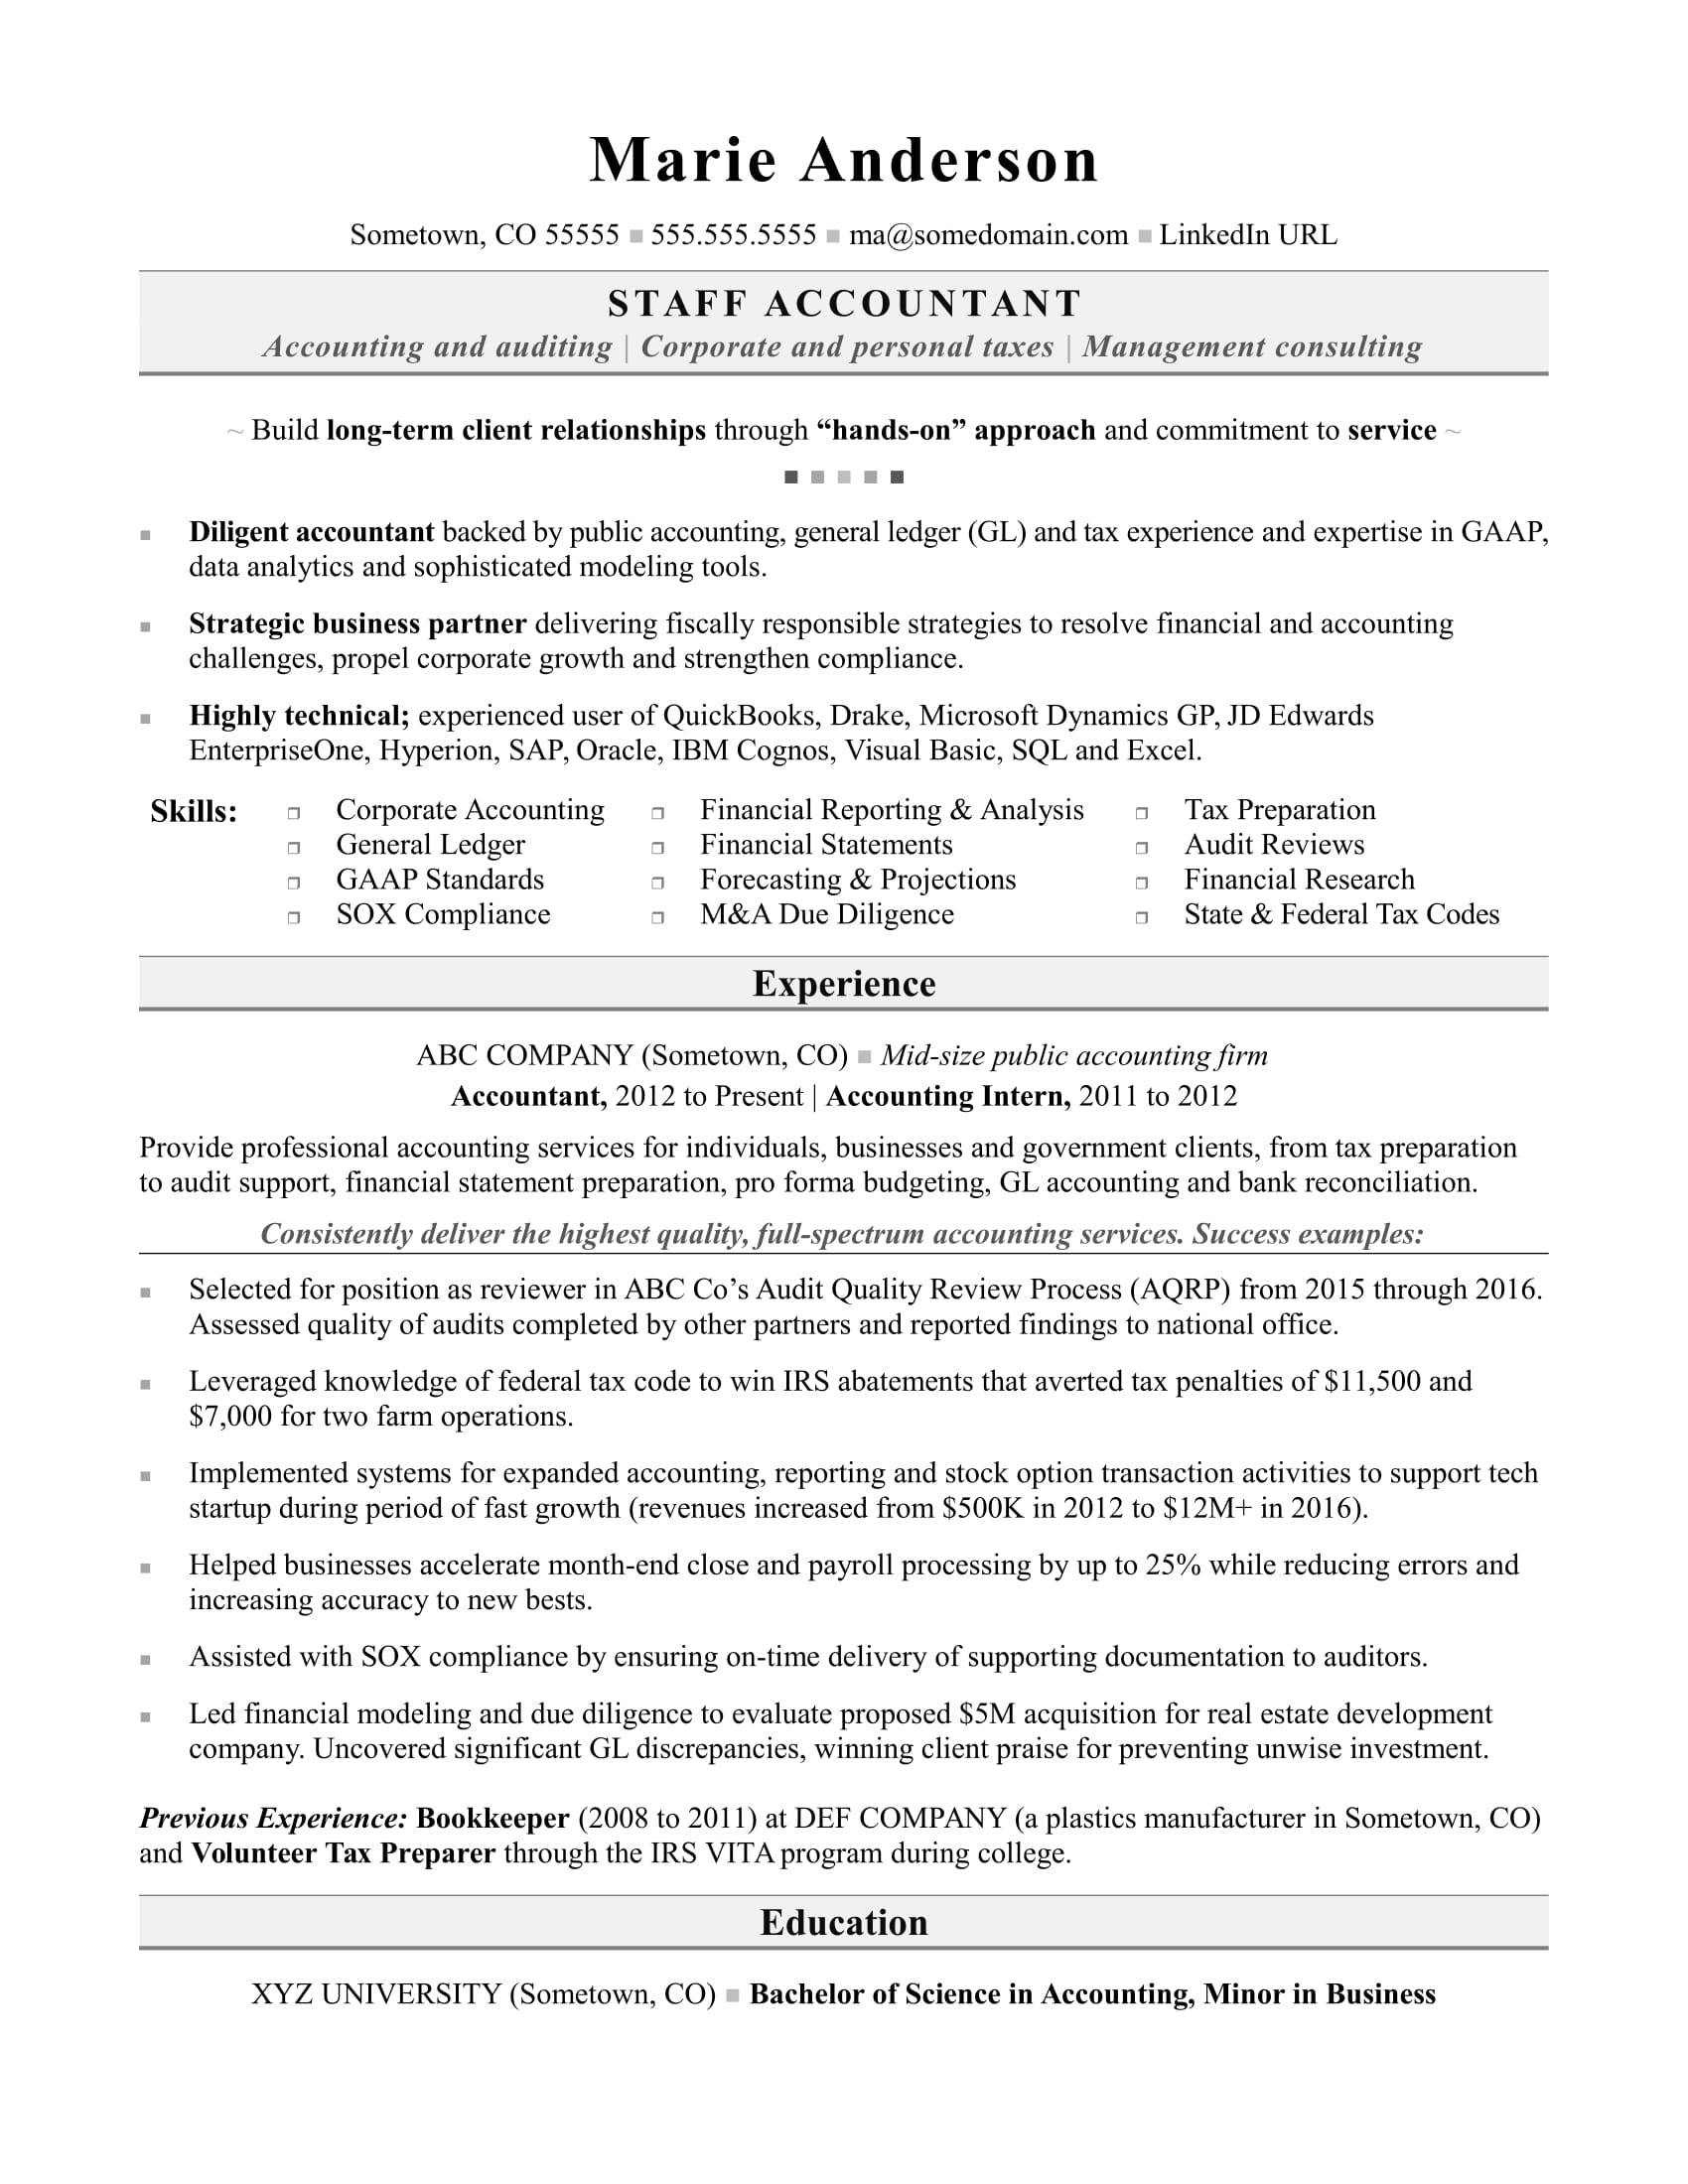 accounting resume sample monster senior staff accountant housekeeping manager pharmacy Resume Senior Staff Accountant Resume Sample